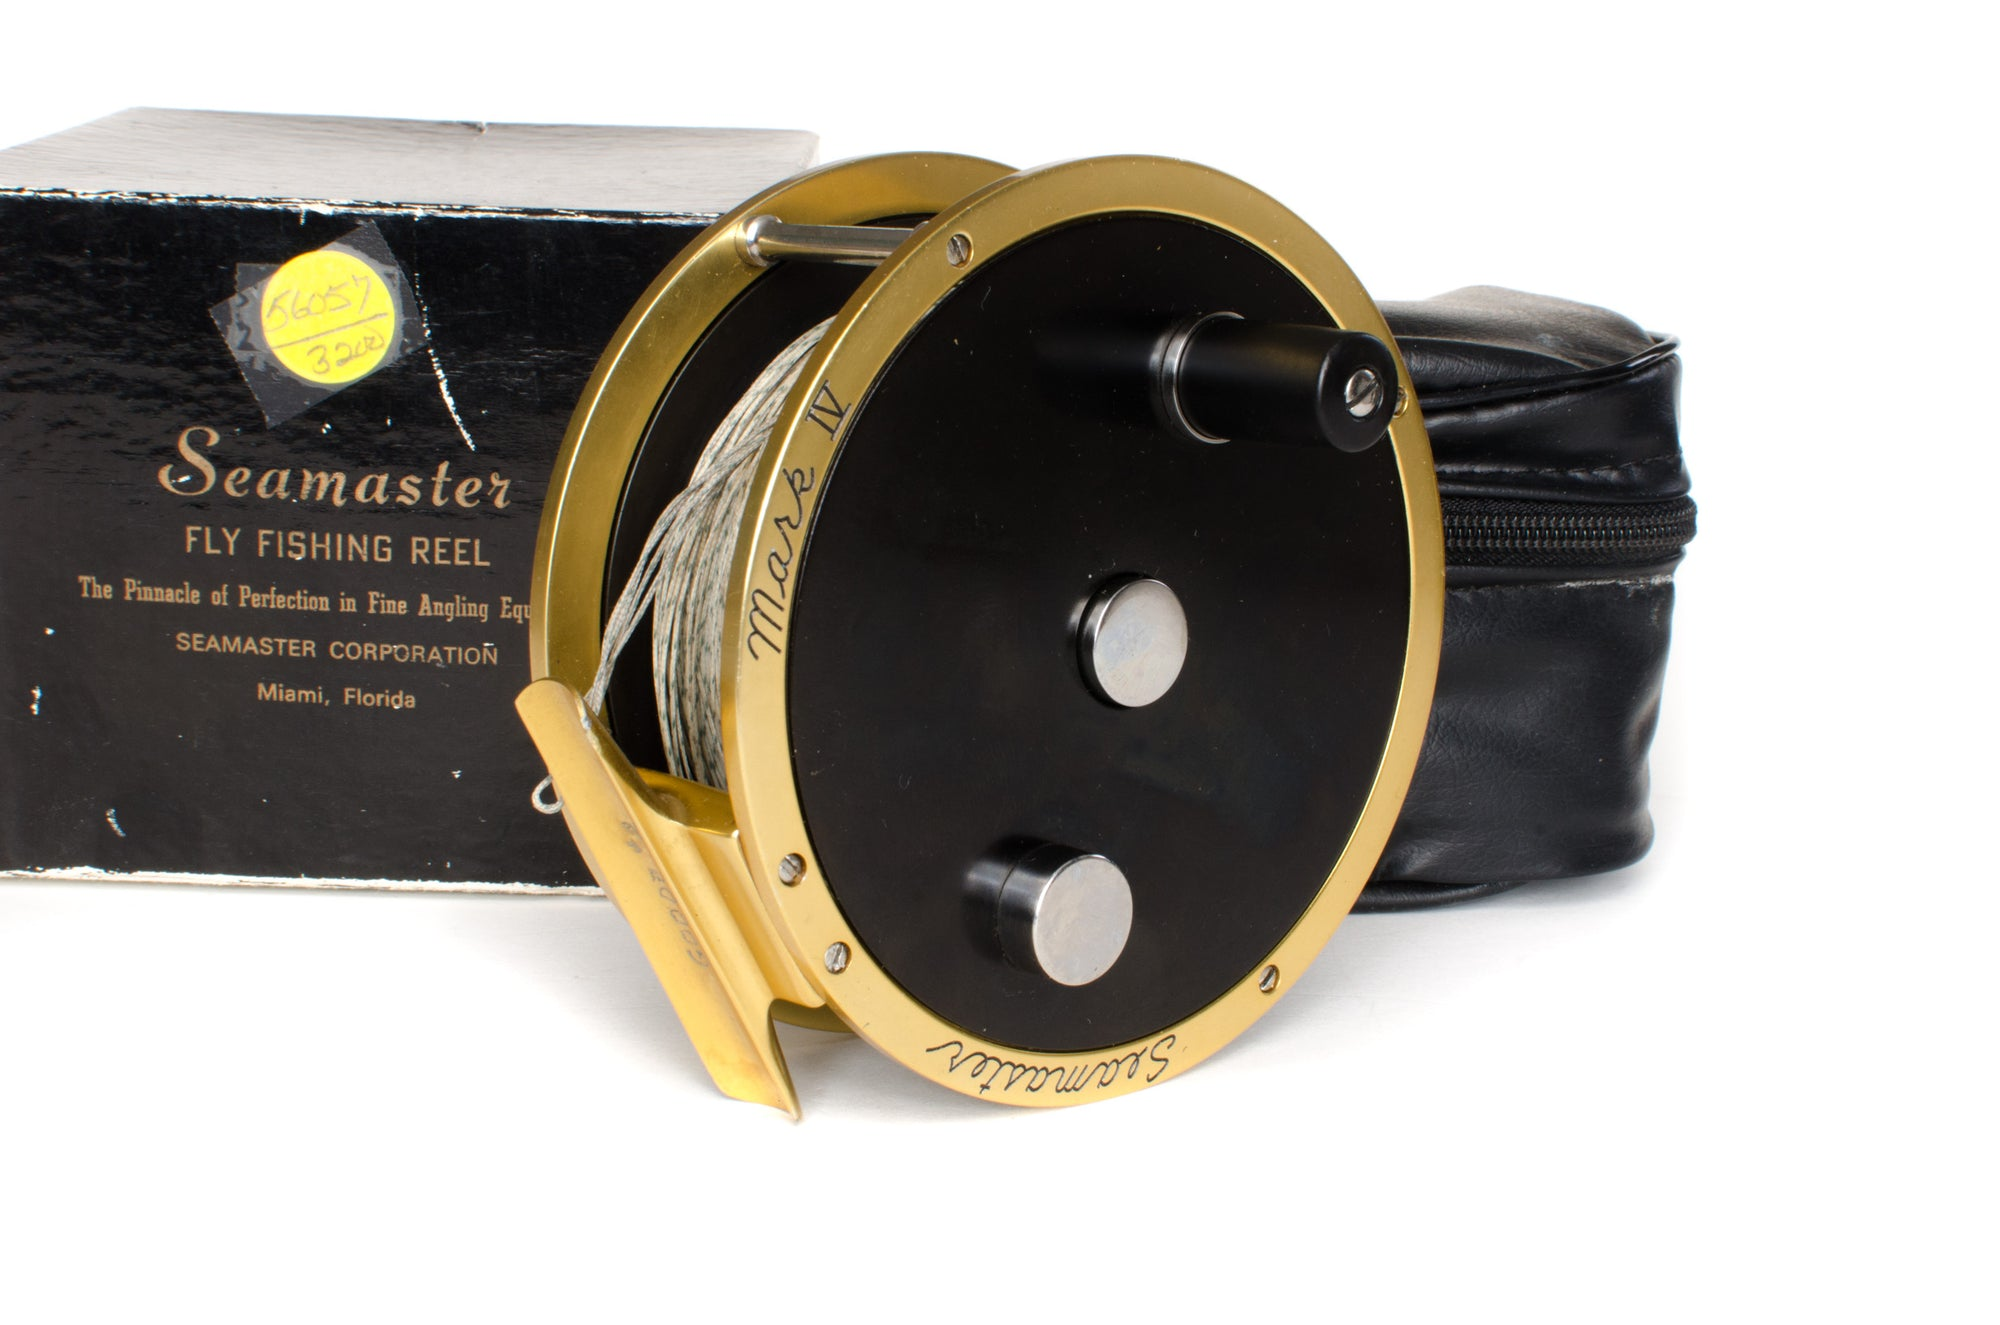 Seamaster Mark IV Fly Reel - RHW